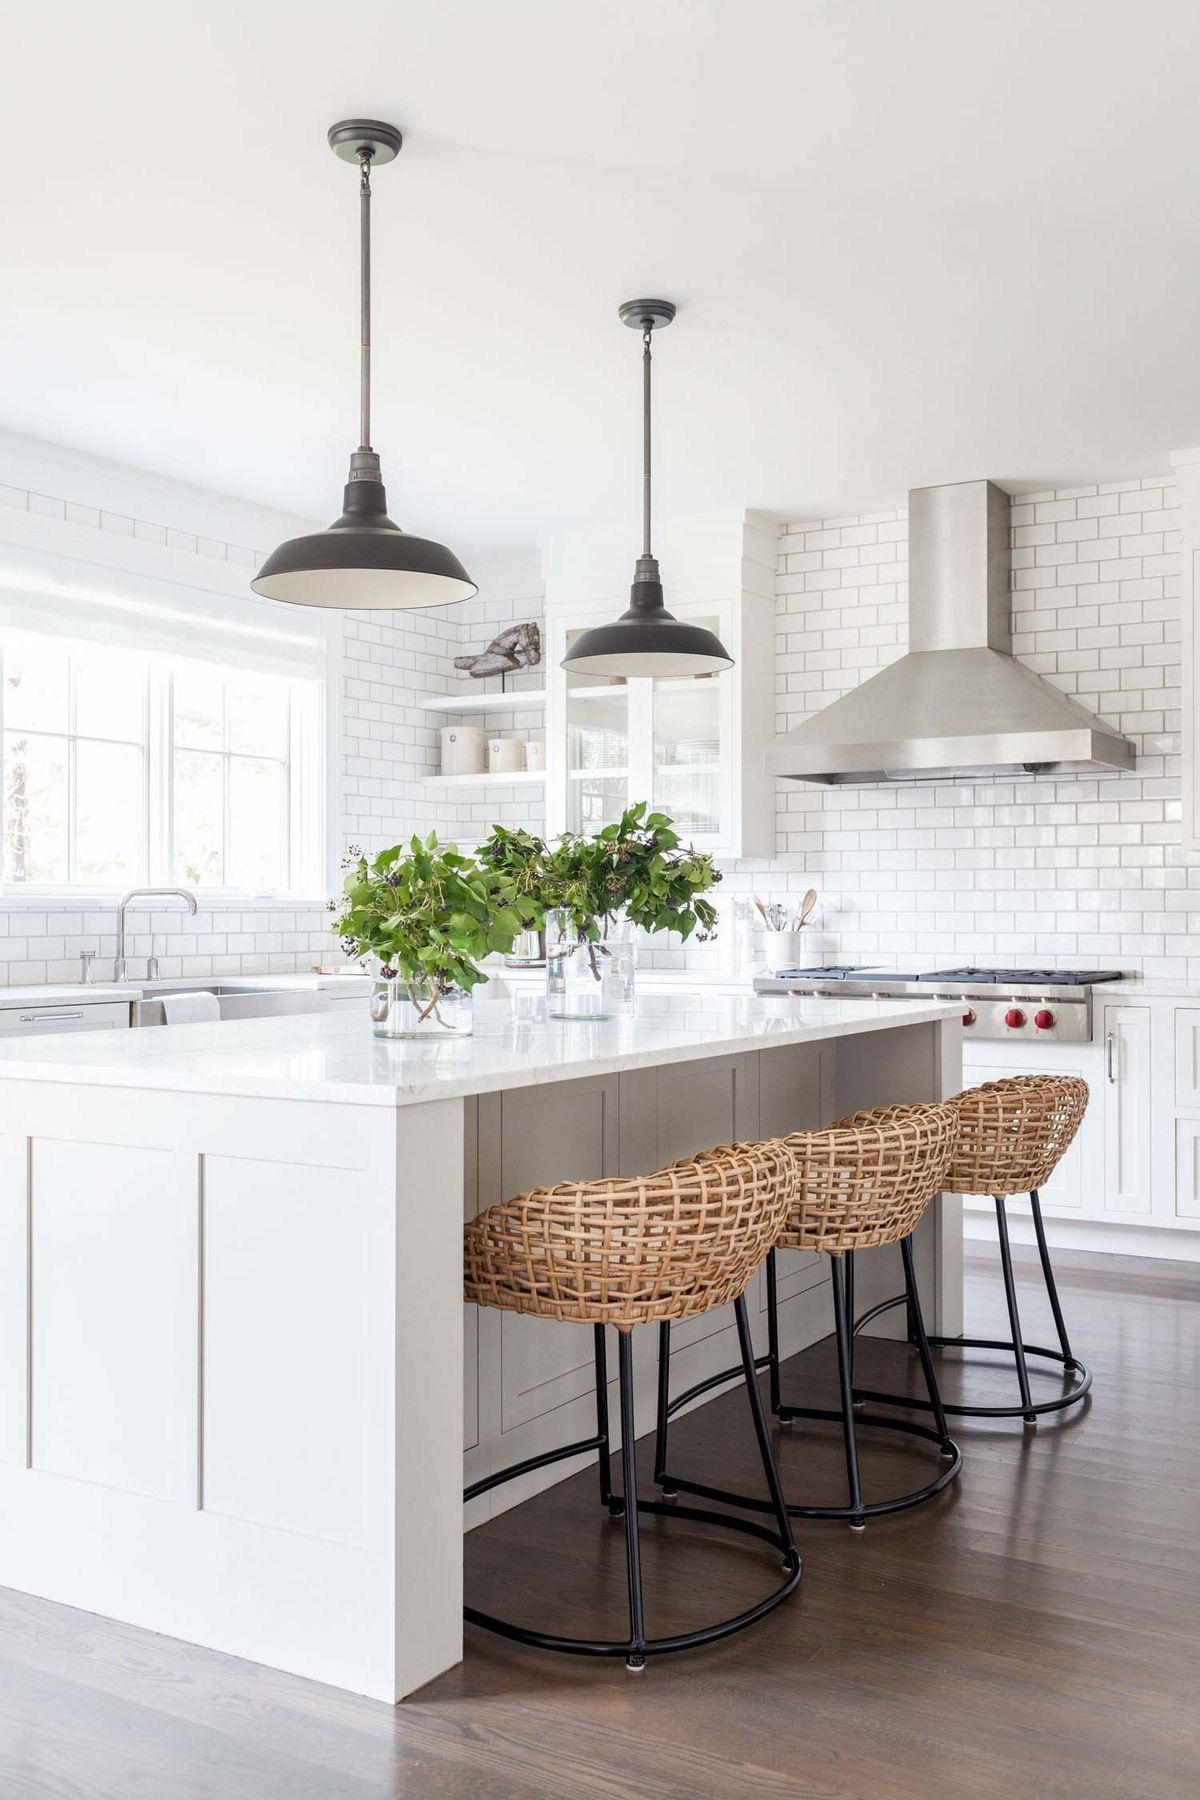 Pin by Maureen McCormick on Kitchens   Pinterest   Kitchens, Stove ...